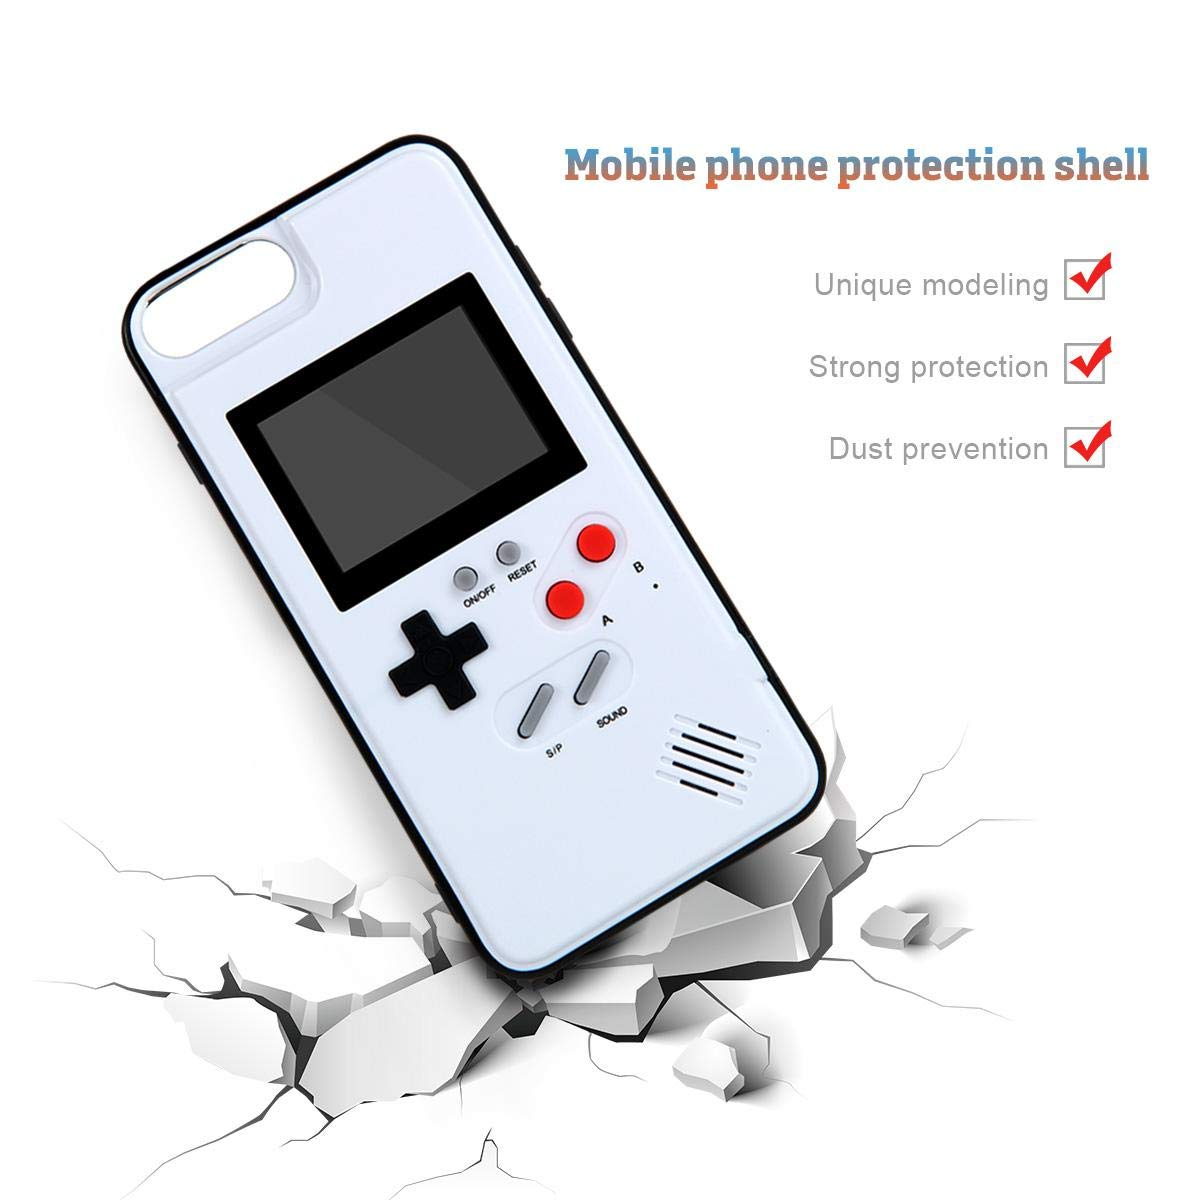 Womdee Game Console iPhone Case, Handheld Game Console Case Cover with 36 Games Phone Case (iPhone 6p/7p/8p, White) by Womdee (Image #6)